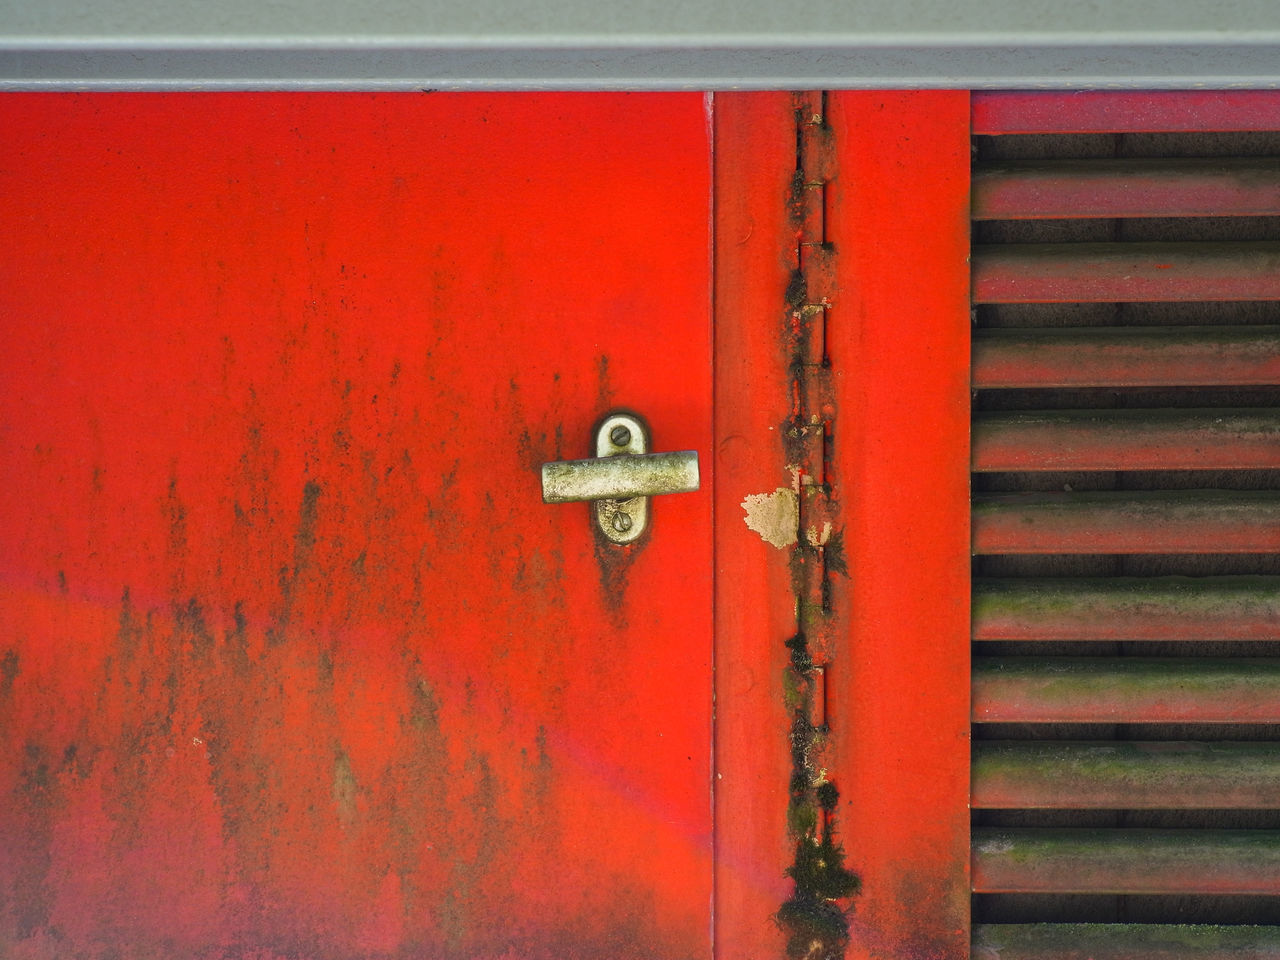 FULL FRAME SHOT OF RED DOOR WITH METAL GATE